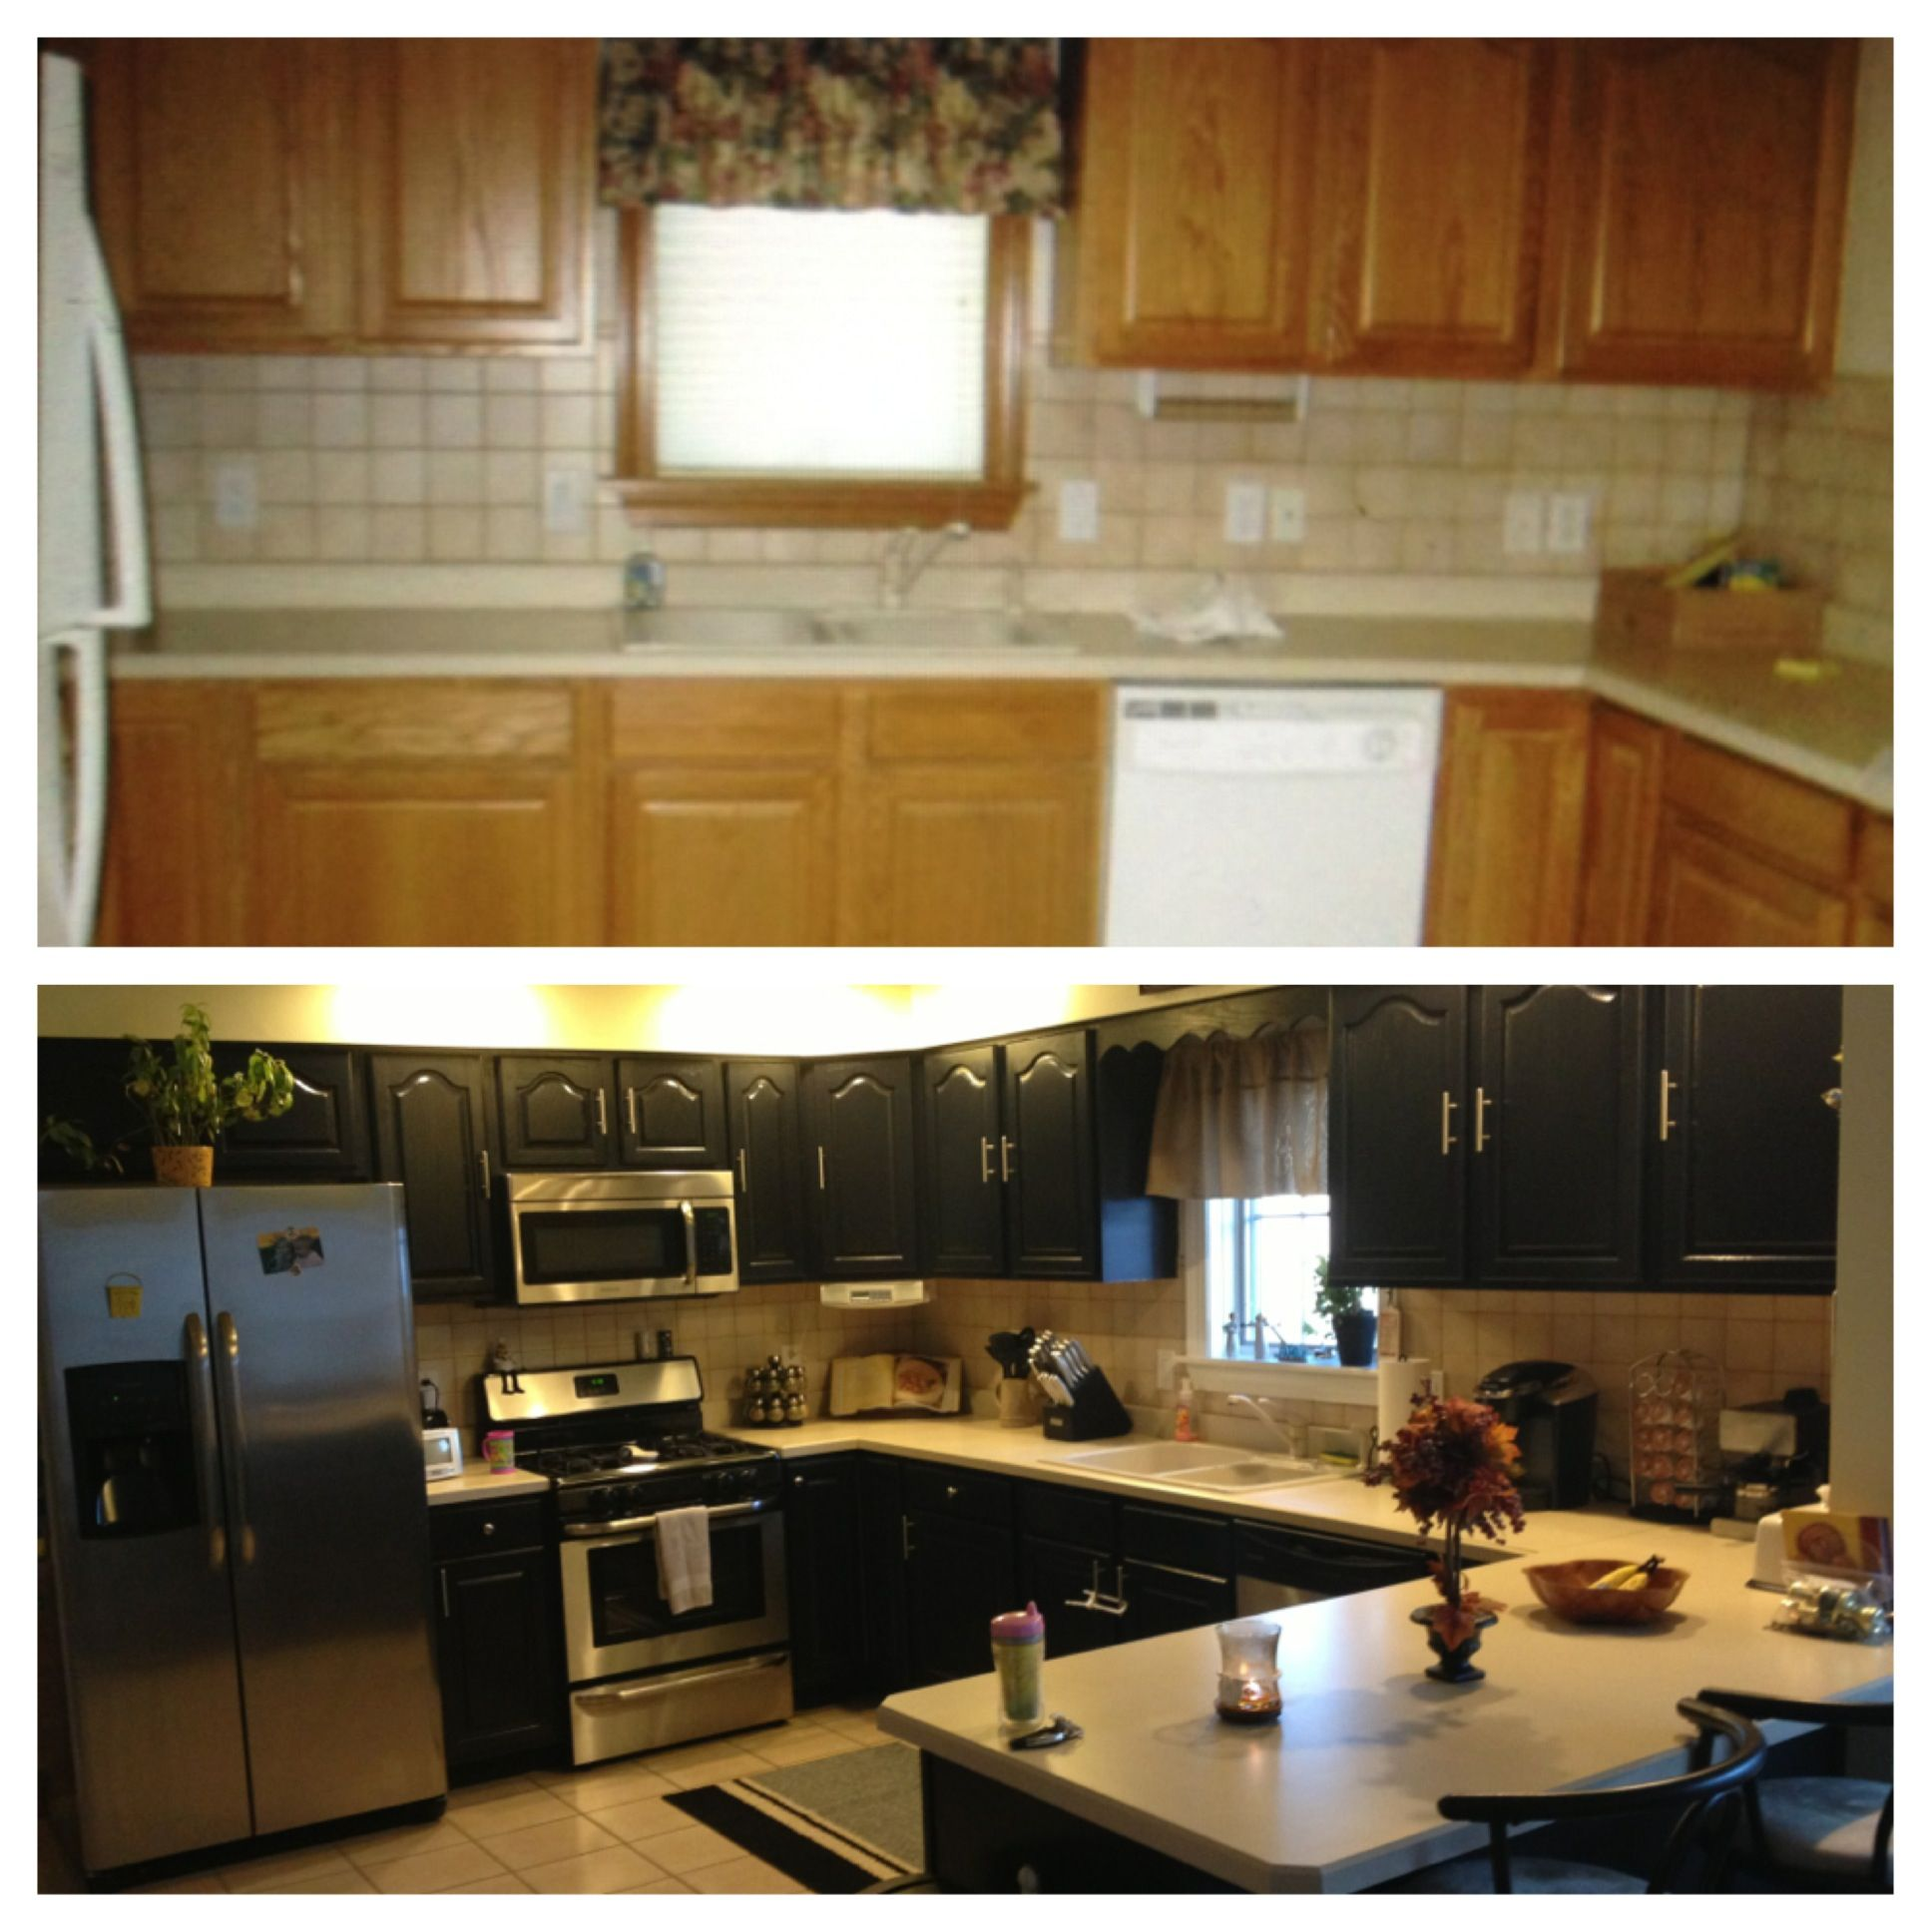 Gloss Black Kitchen Cabinets: Painted Oak Cabinets To New Black By Valspar In Semi Gloss